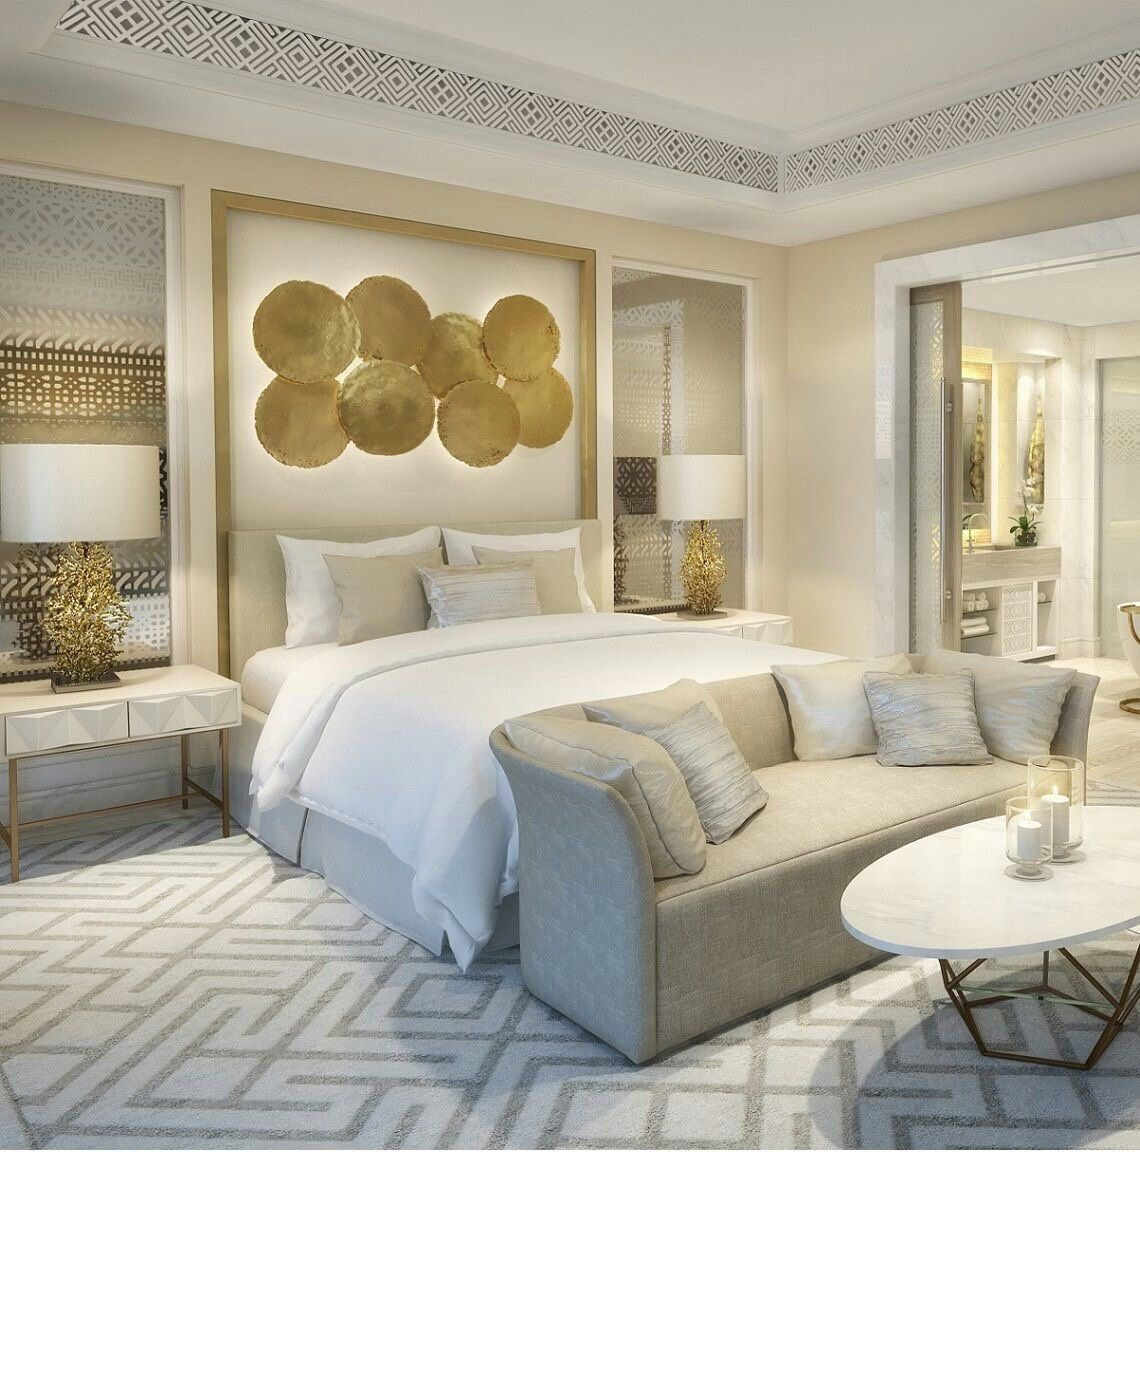 master bedroom pattern and gold accents